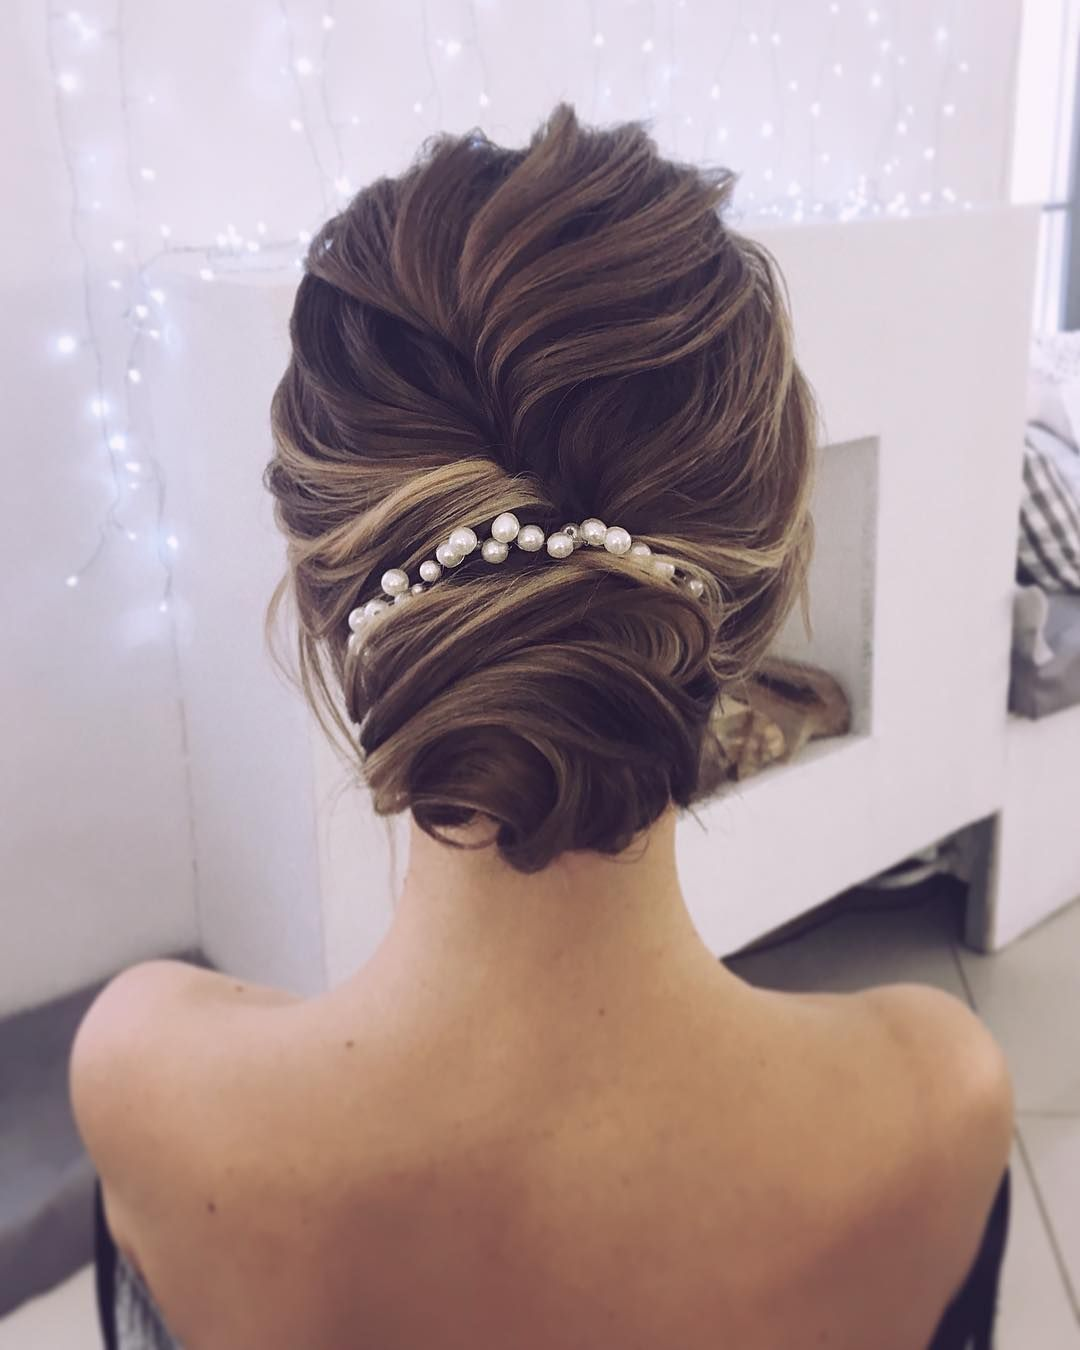 jaw dropping wedding updo hairstyle inspiration | hairstyles